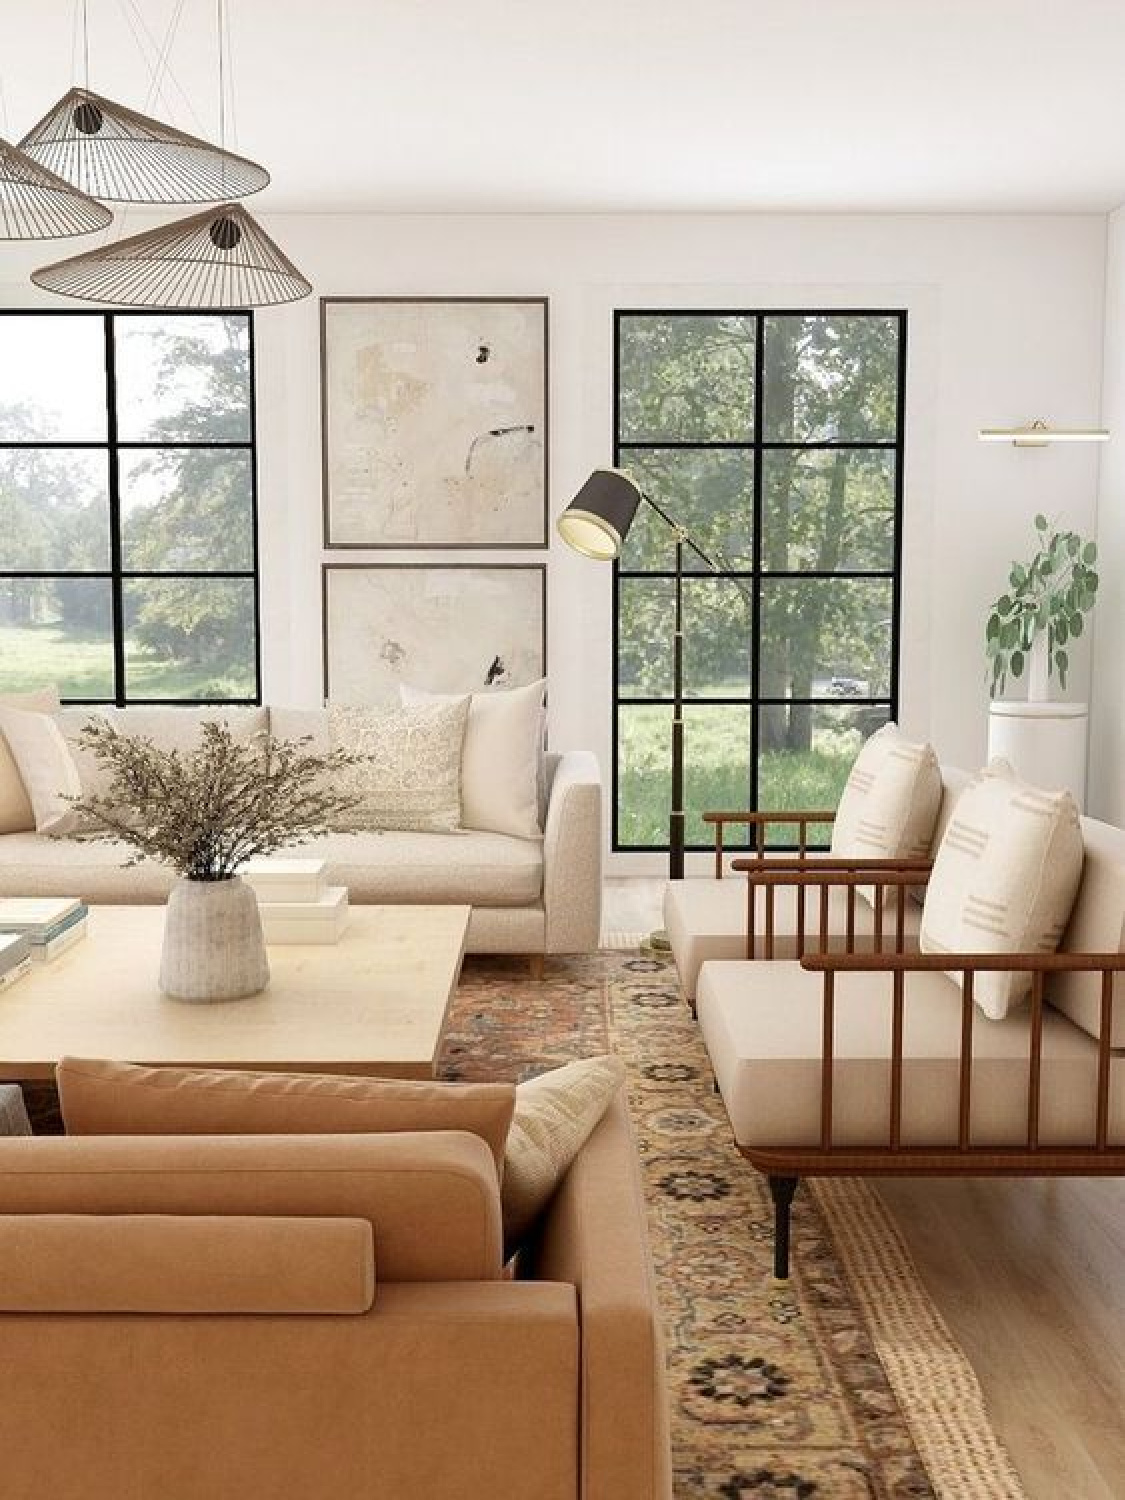 Modern rustic living room with steel windows and neutral  color palette - Sabina Interiors. #livingrooms #modernrustic #interiordesign